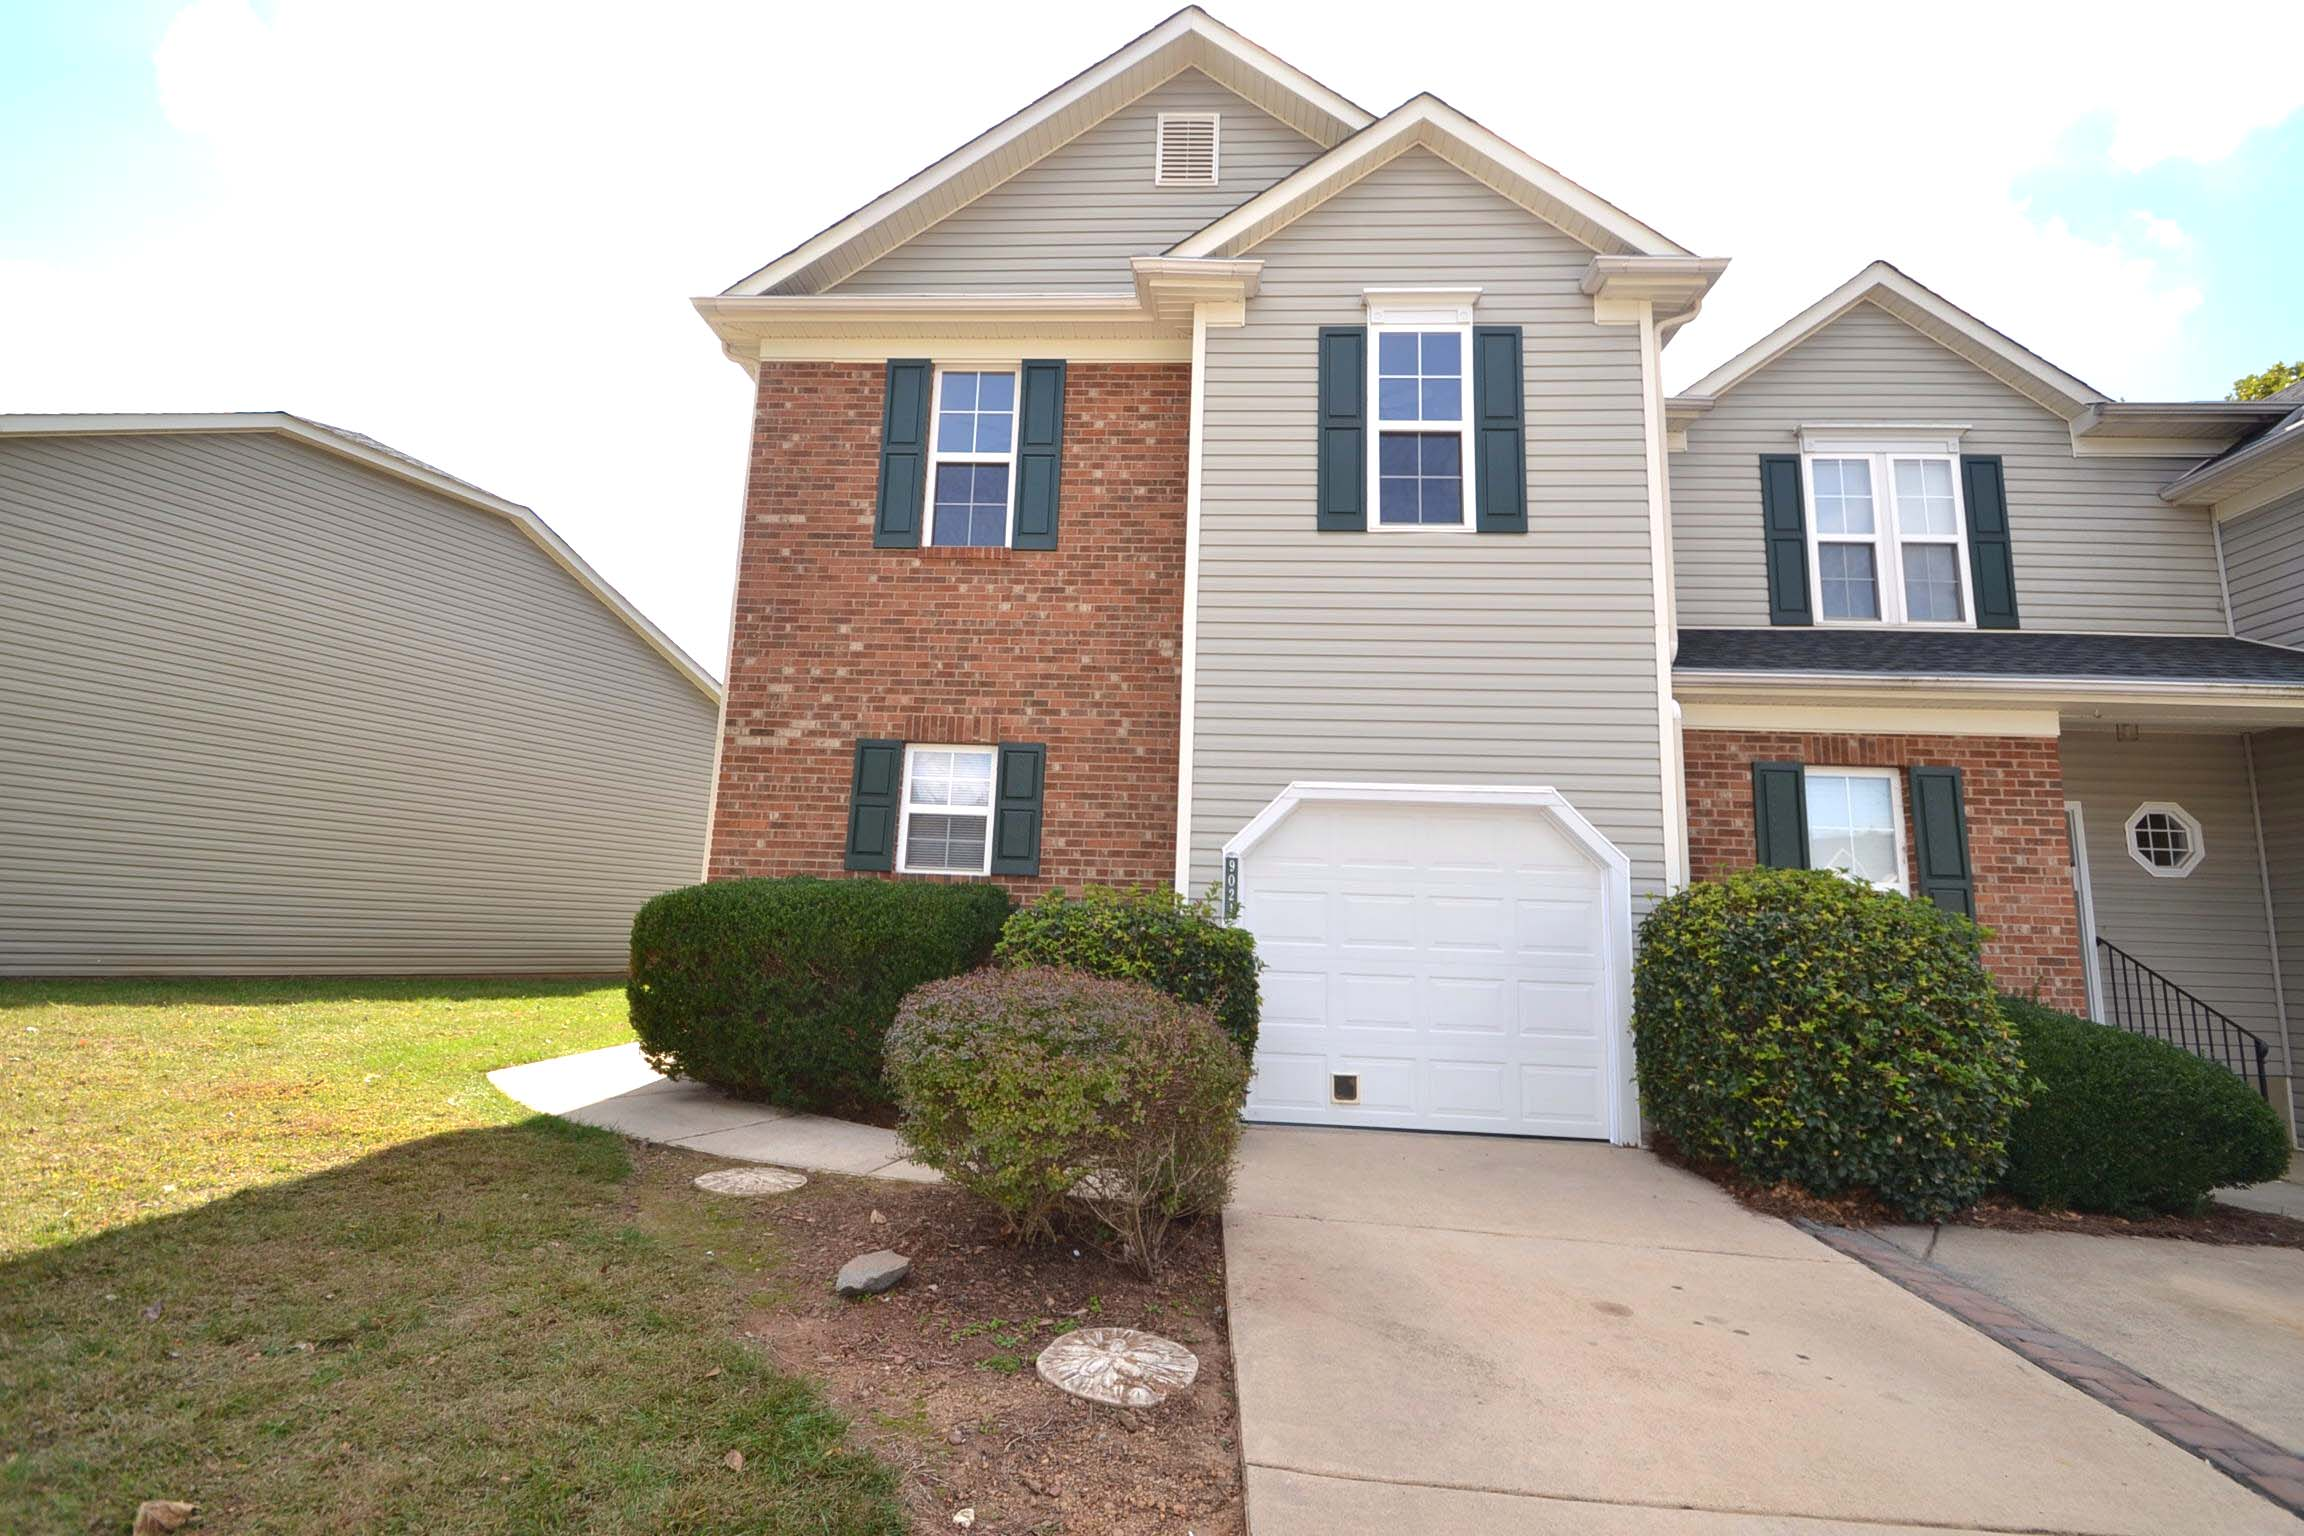 Single Family Houses for Rent in Charlotte NC